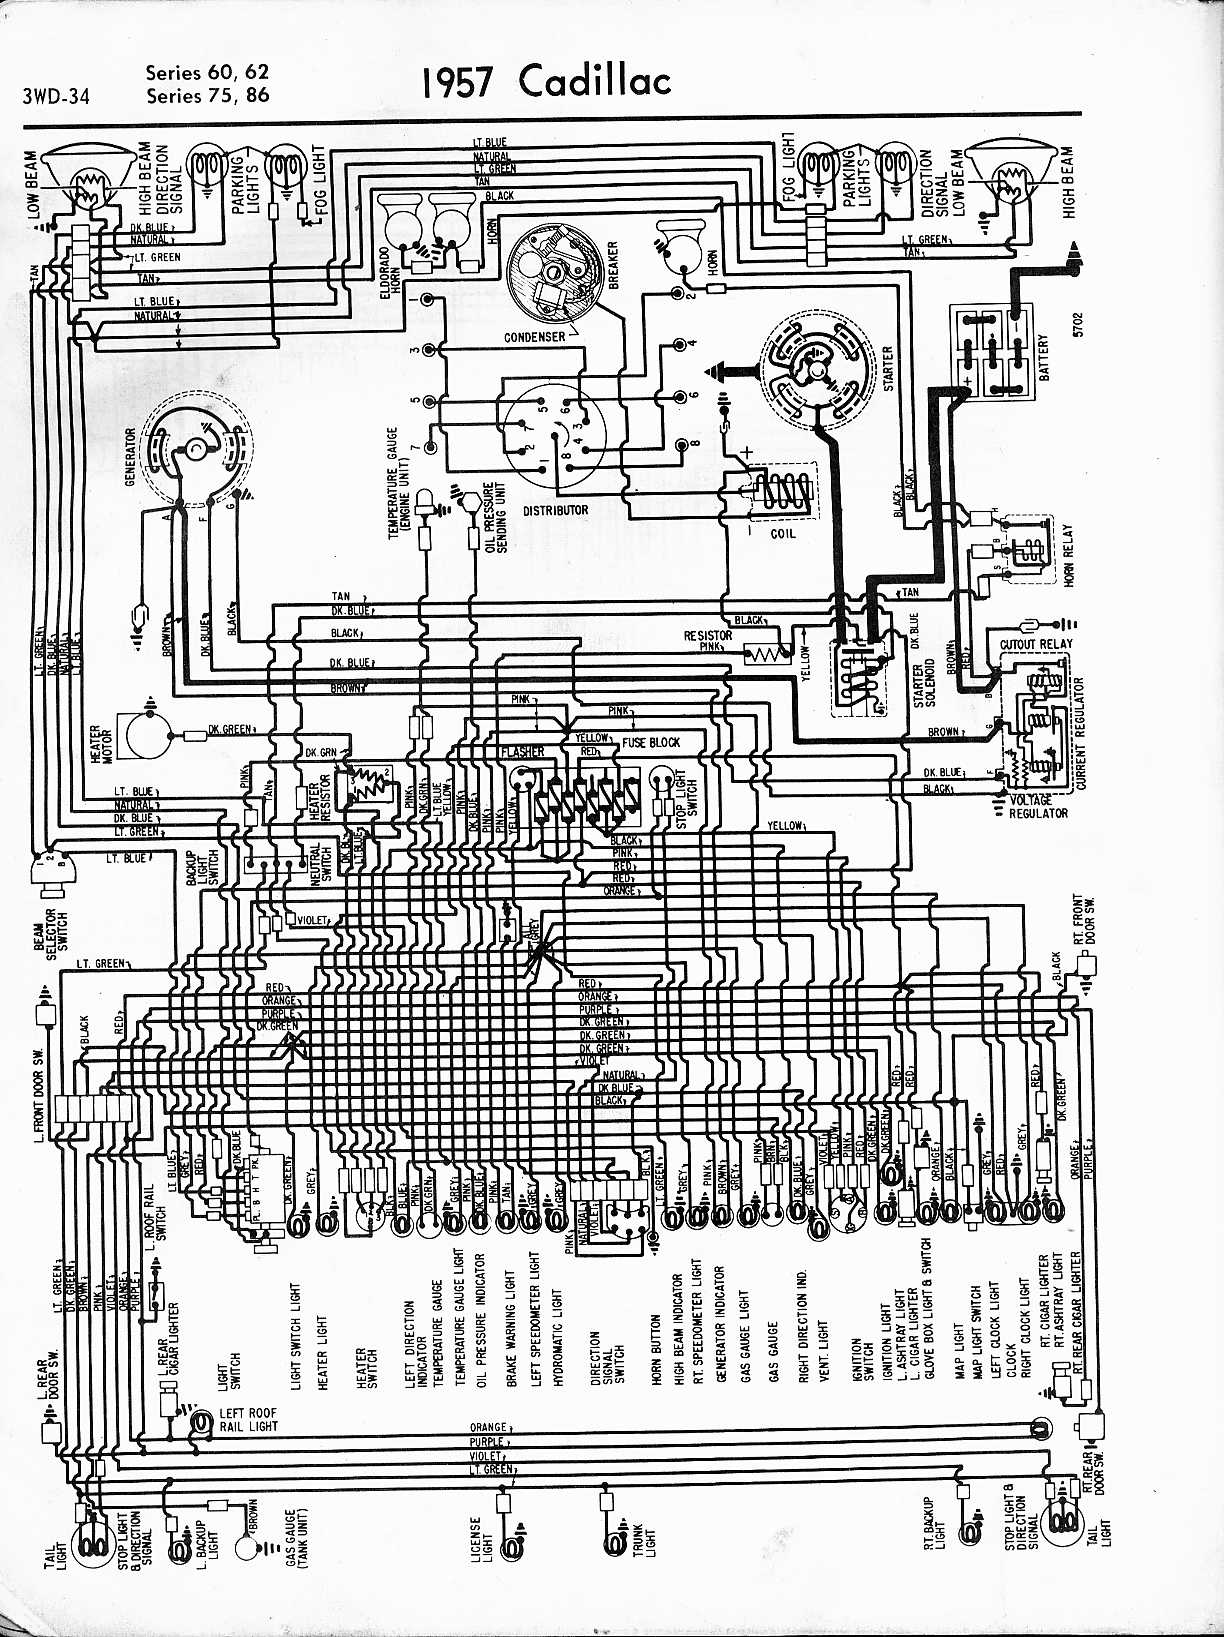 hight resolution of 1963 cadillac wiring harness wiring diagram today 2003 deville wiring harness cadillac wiring diagrams 1957 1965